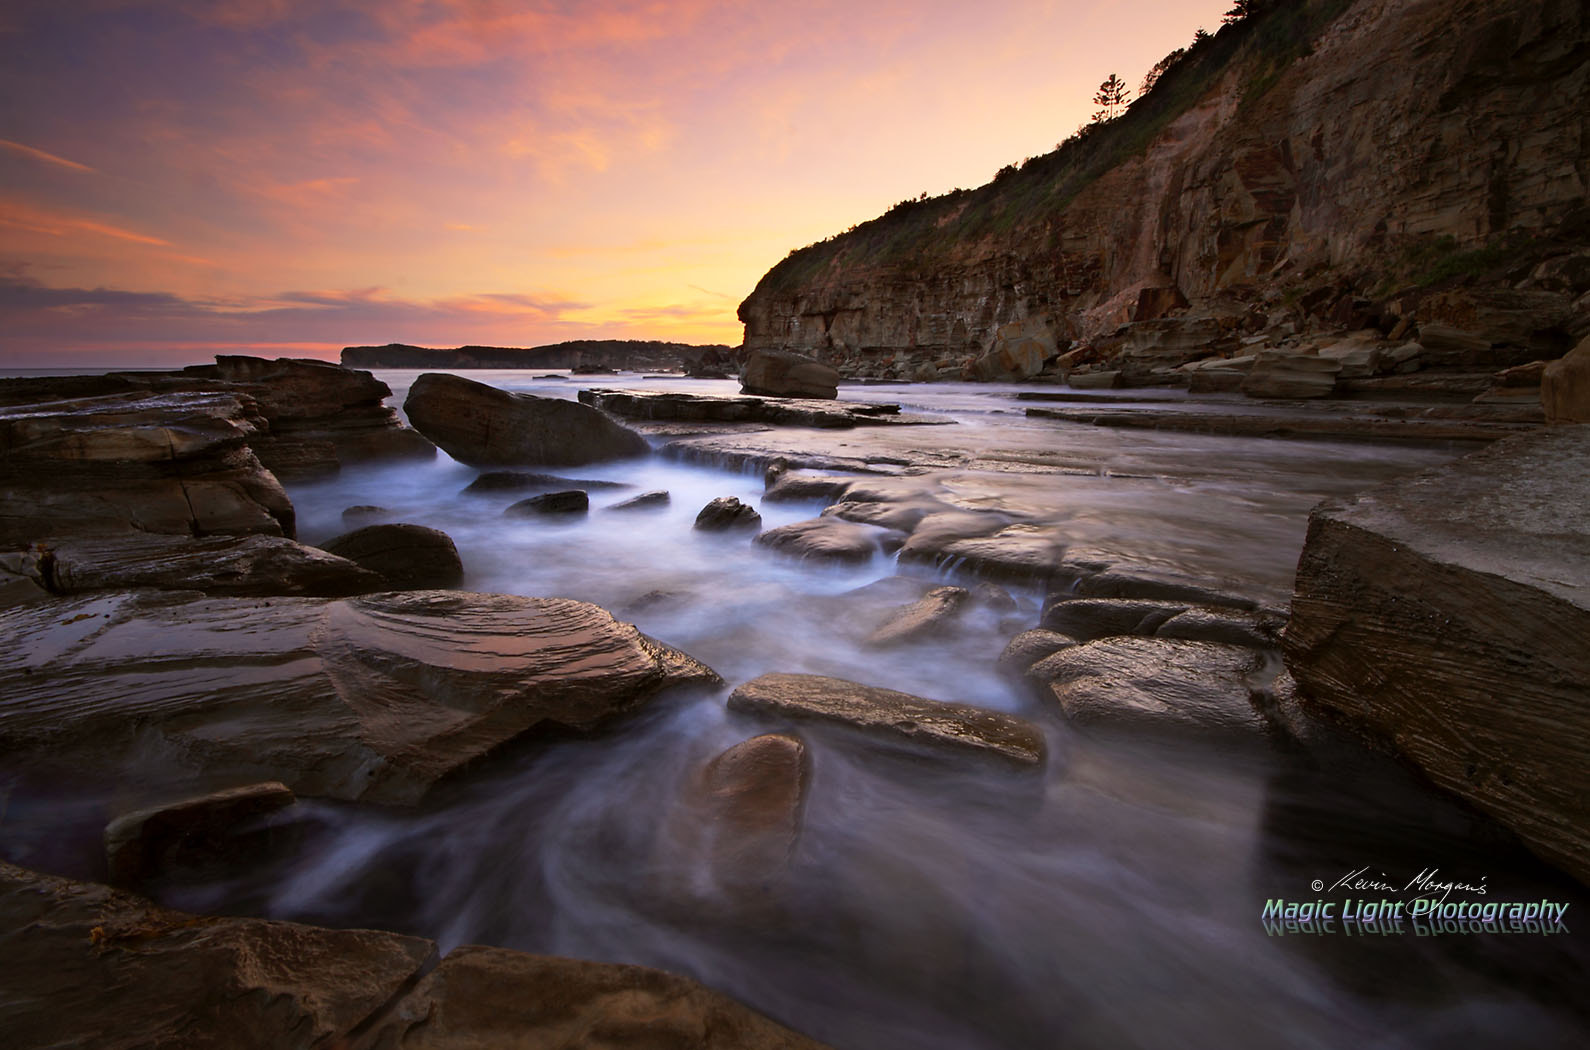 Photograph Skillion Rocks at Sunset by Kevin Morgan on 500px